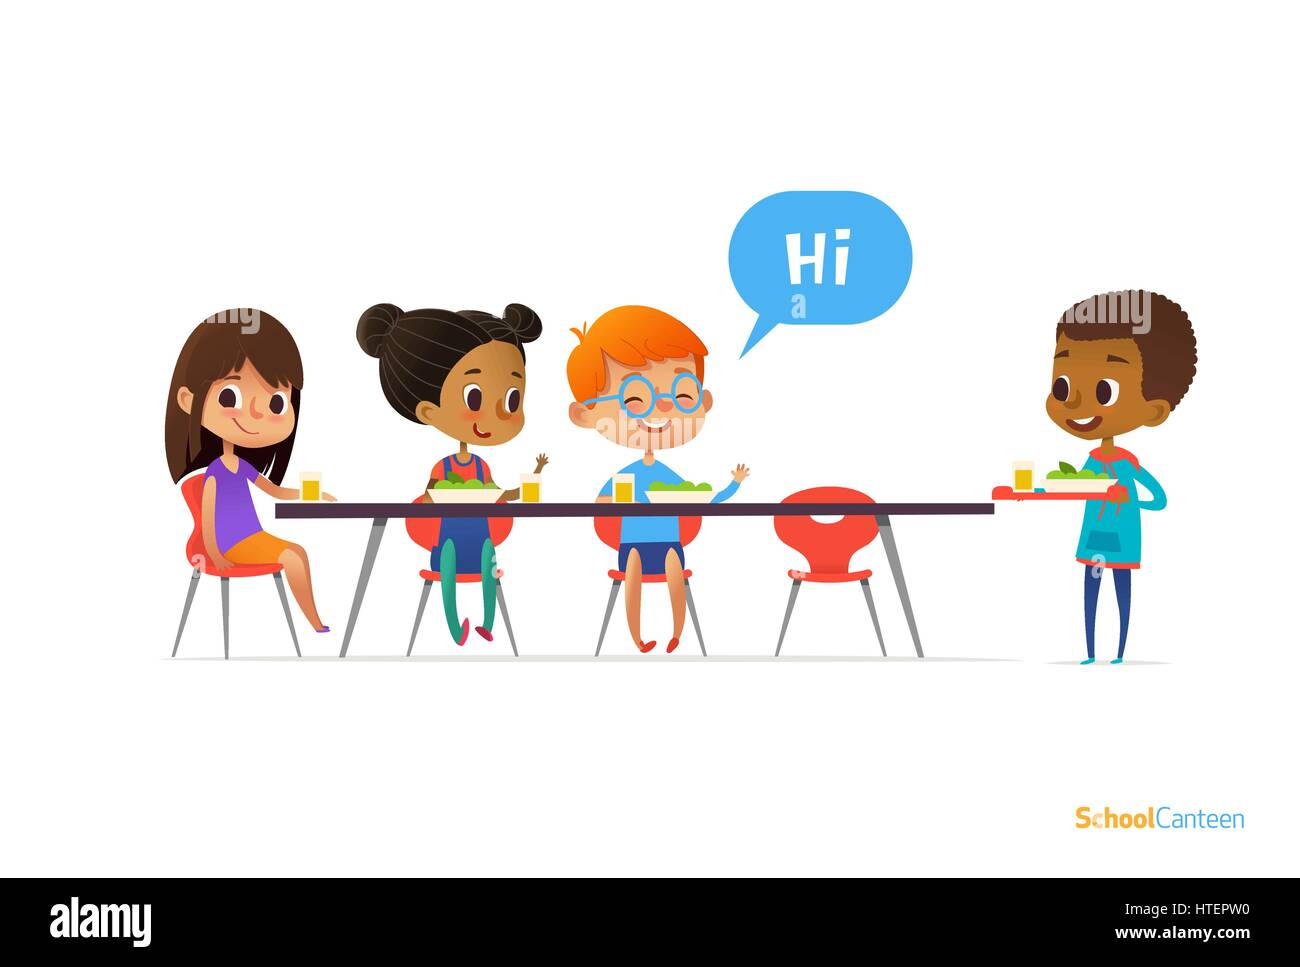 Multiracial kids sitting at table in school canteen and greeting multiracial kids sitting at table in school canteen and greeting newcomer boy holding tray with food children s relationships concept m4hsunfo